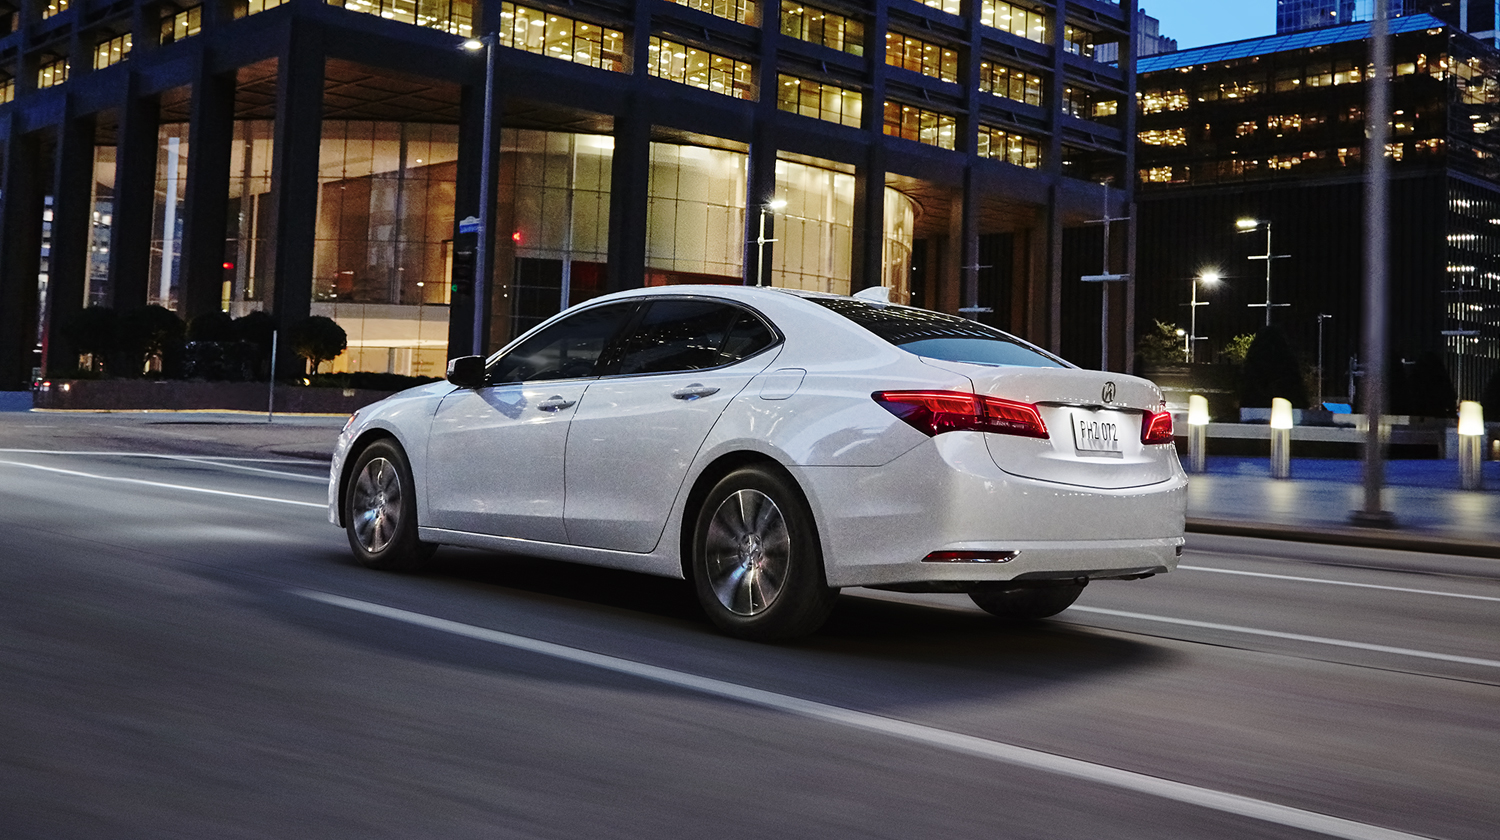 2017 Acura TLX Exterior City Night